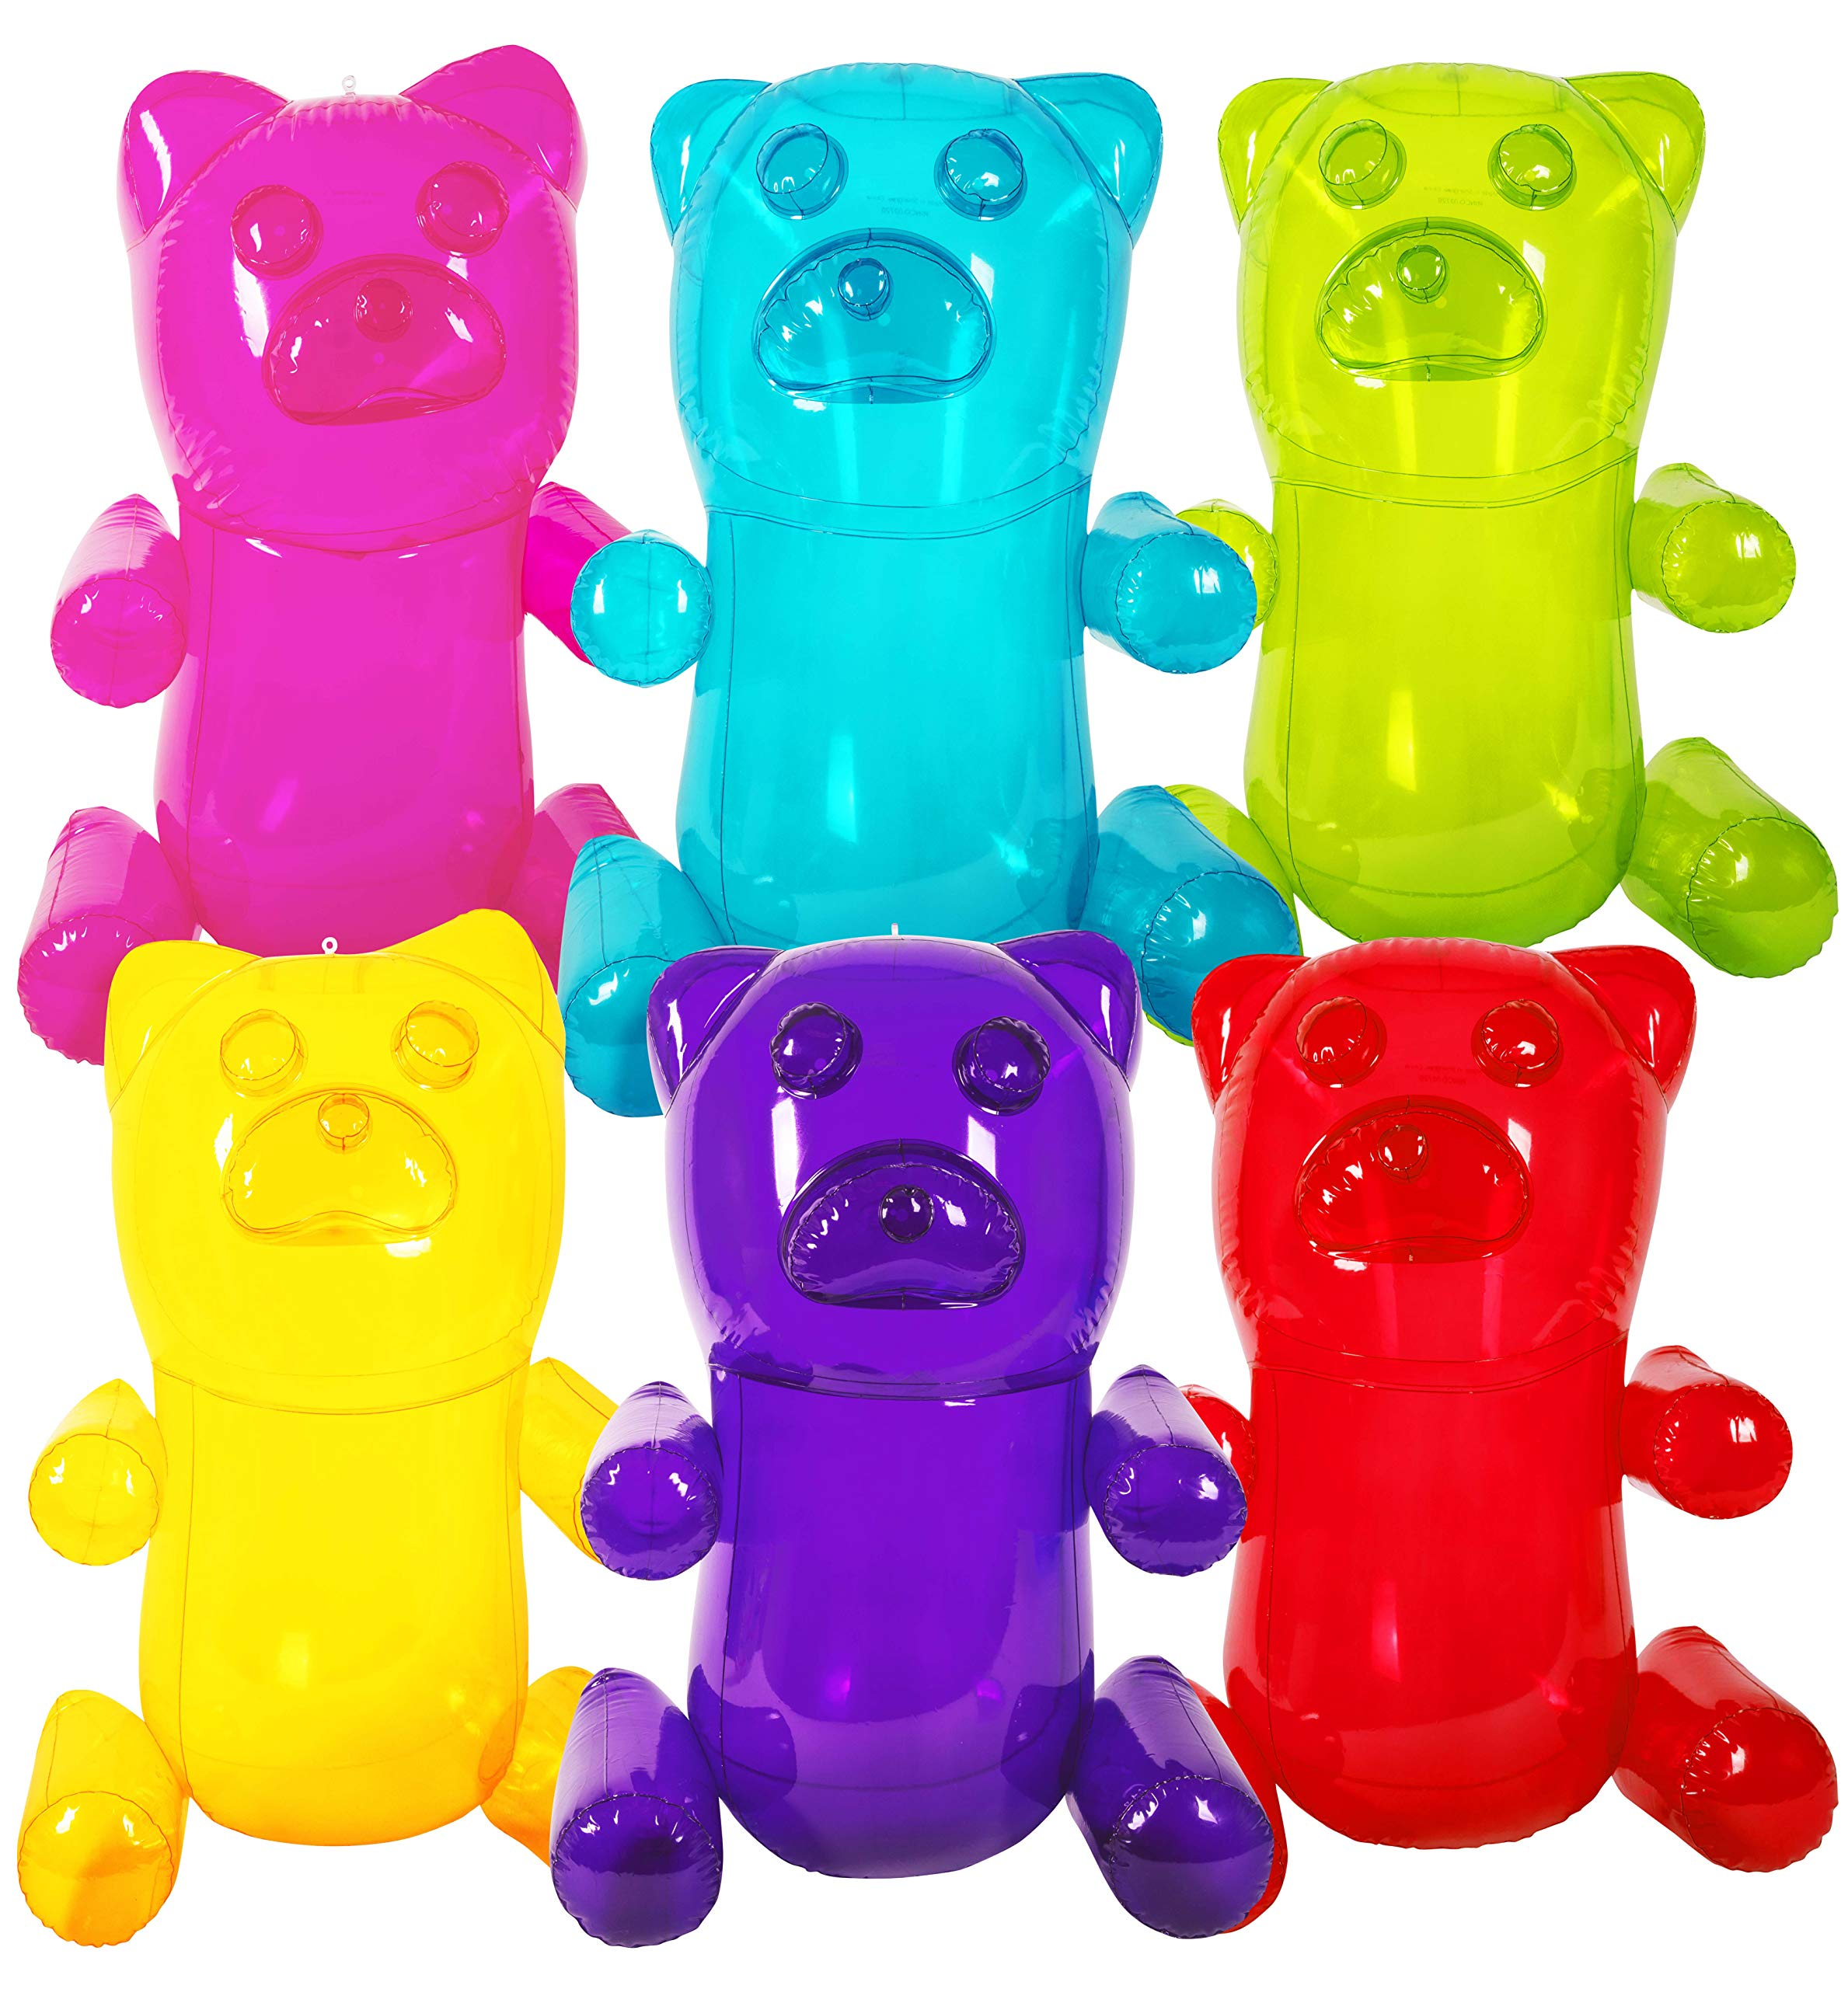 Kangaroo's HUGE 24'' Inflatable Gummy Bears (6-Pack); Girls Party Favors; Party Decor! Fun Colors by K Brands